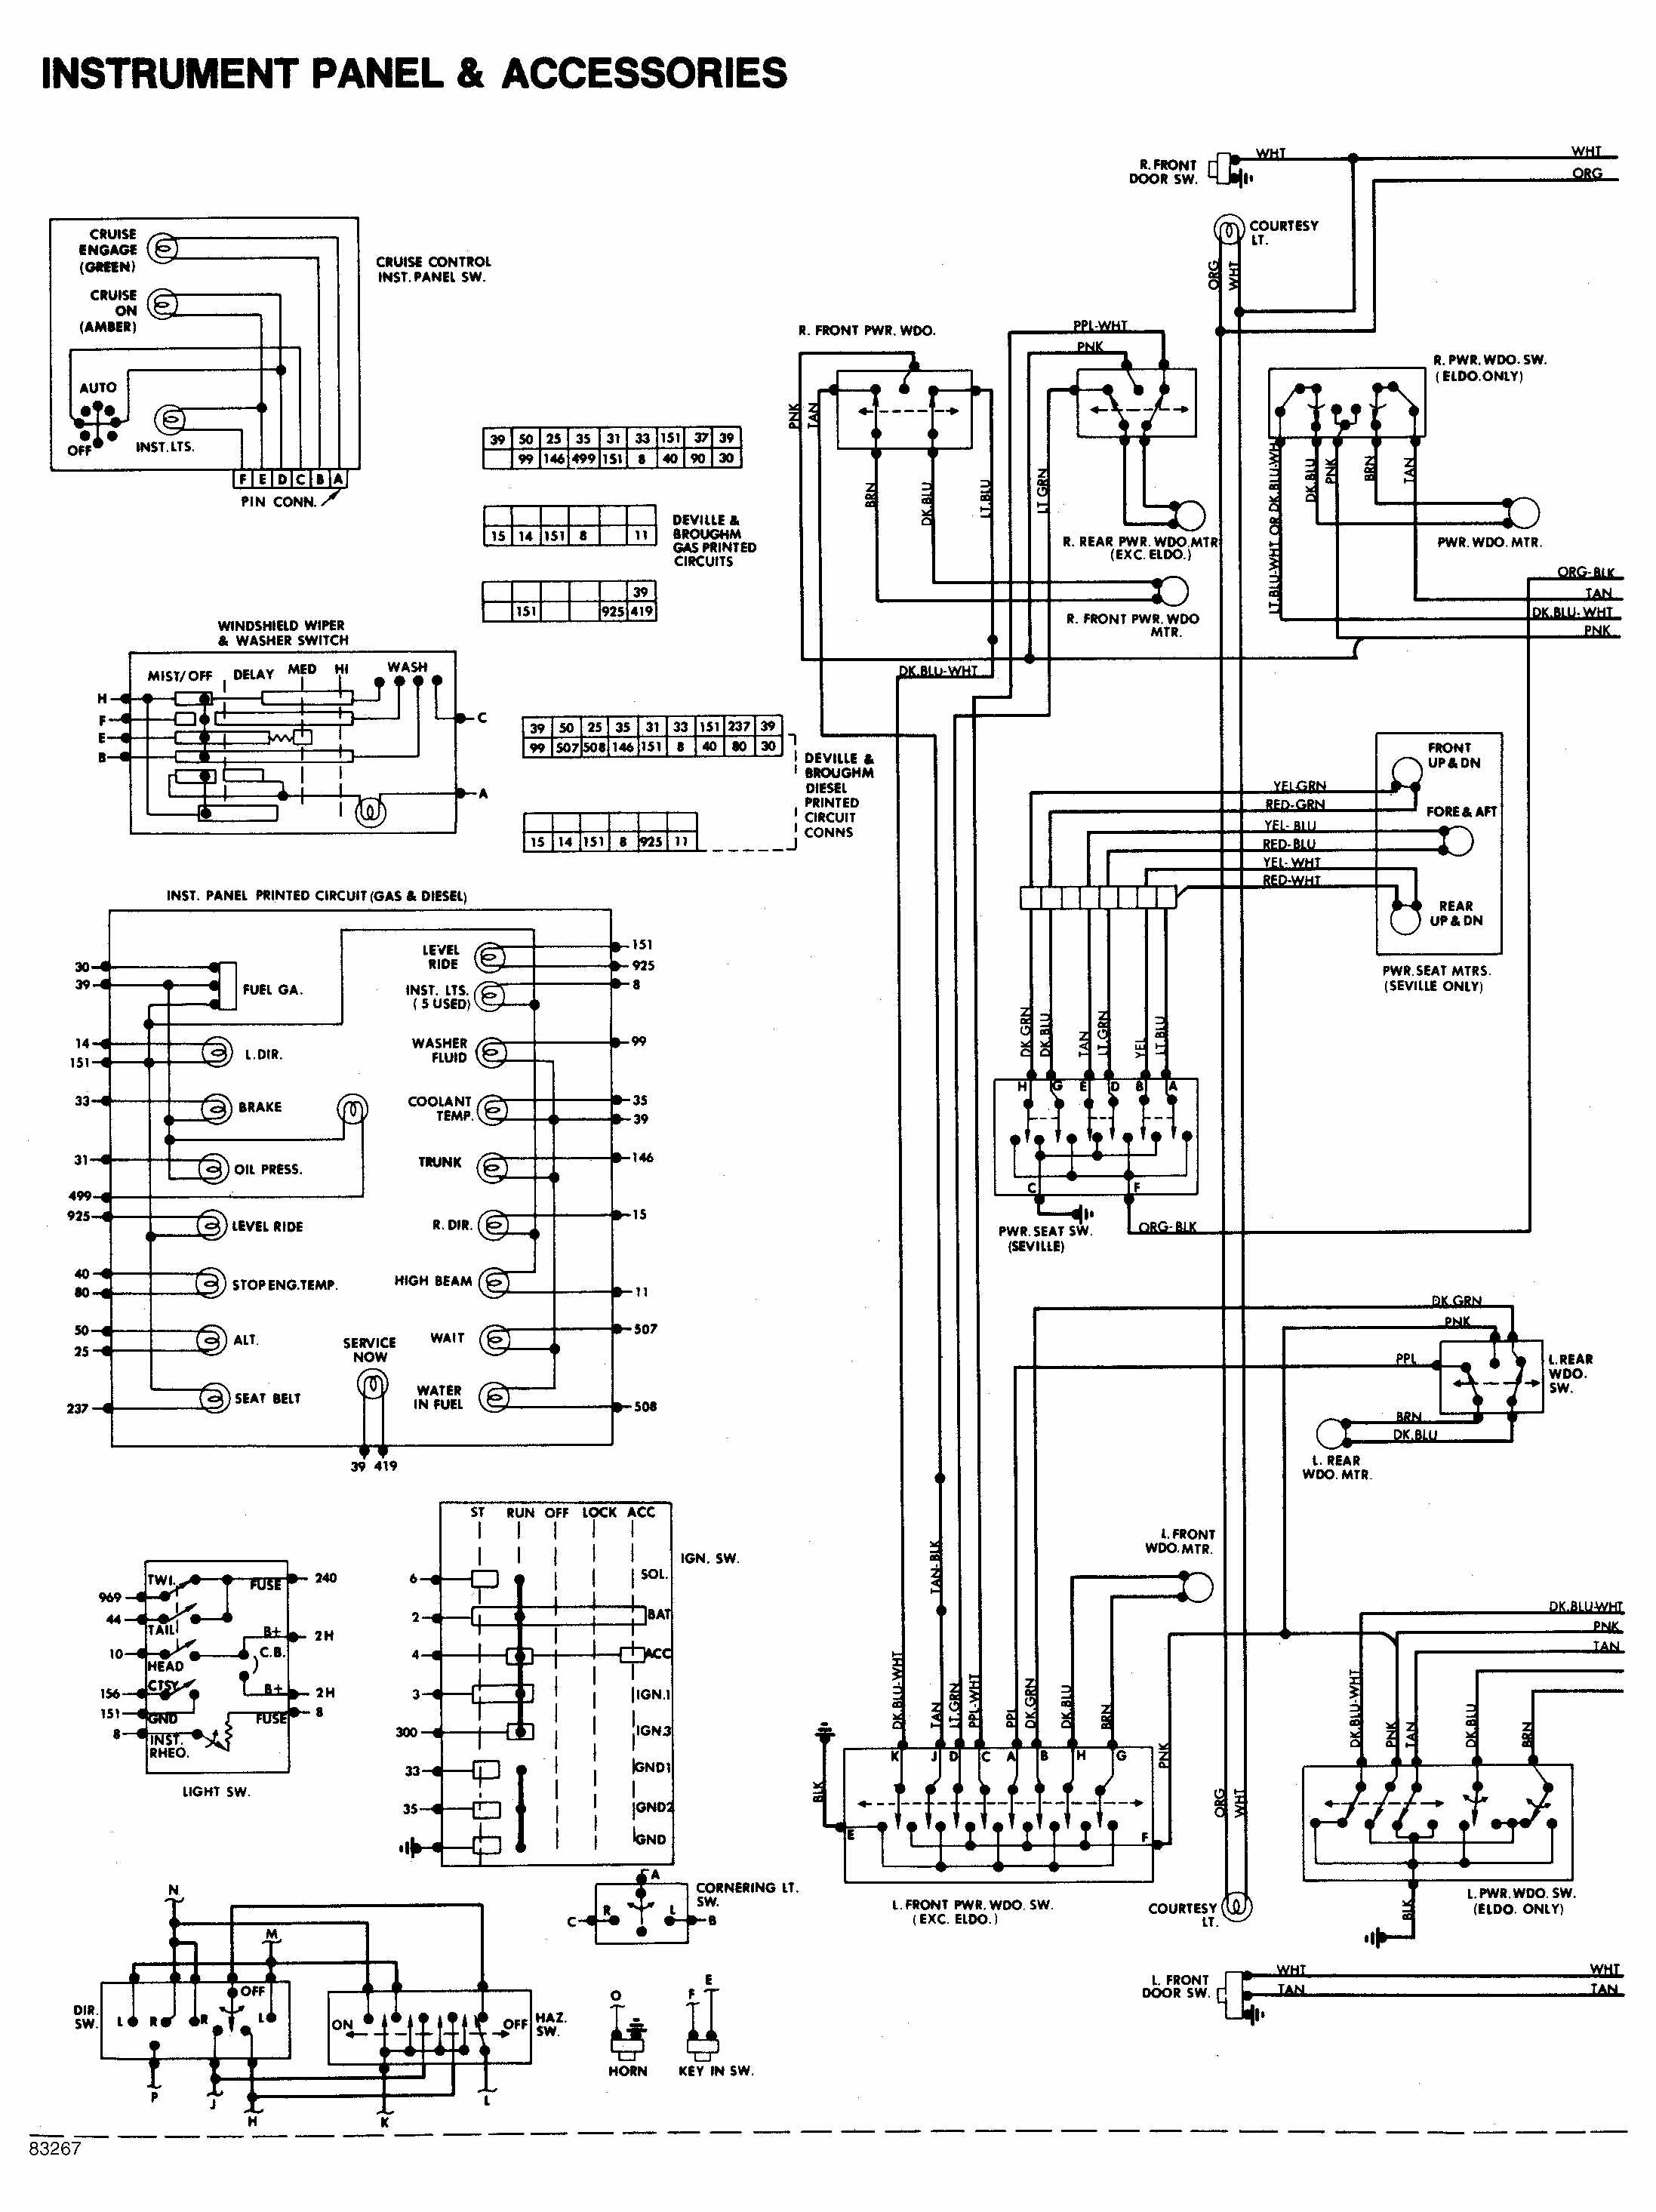 1984 Mustang Wiring Diagram - Wiring Diagrams Export on